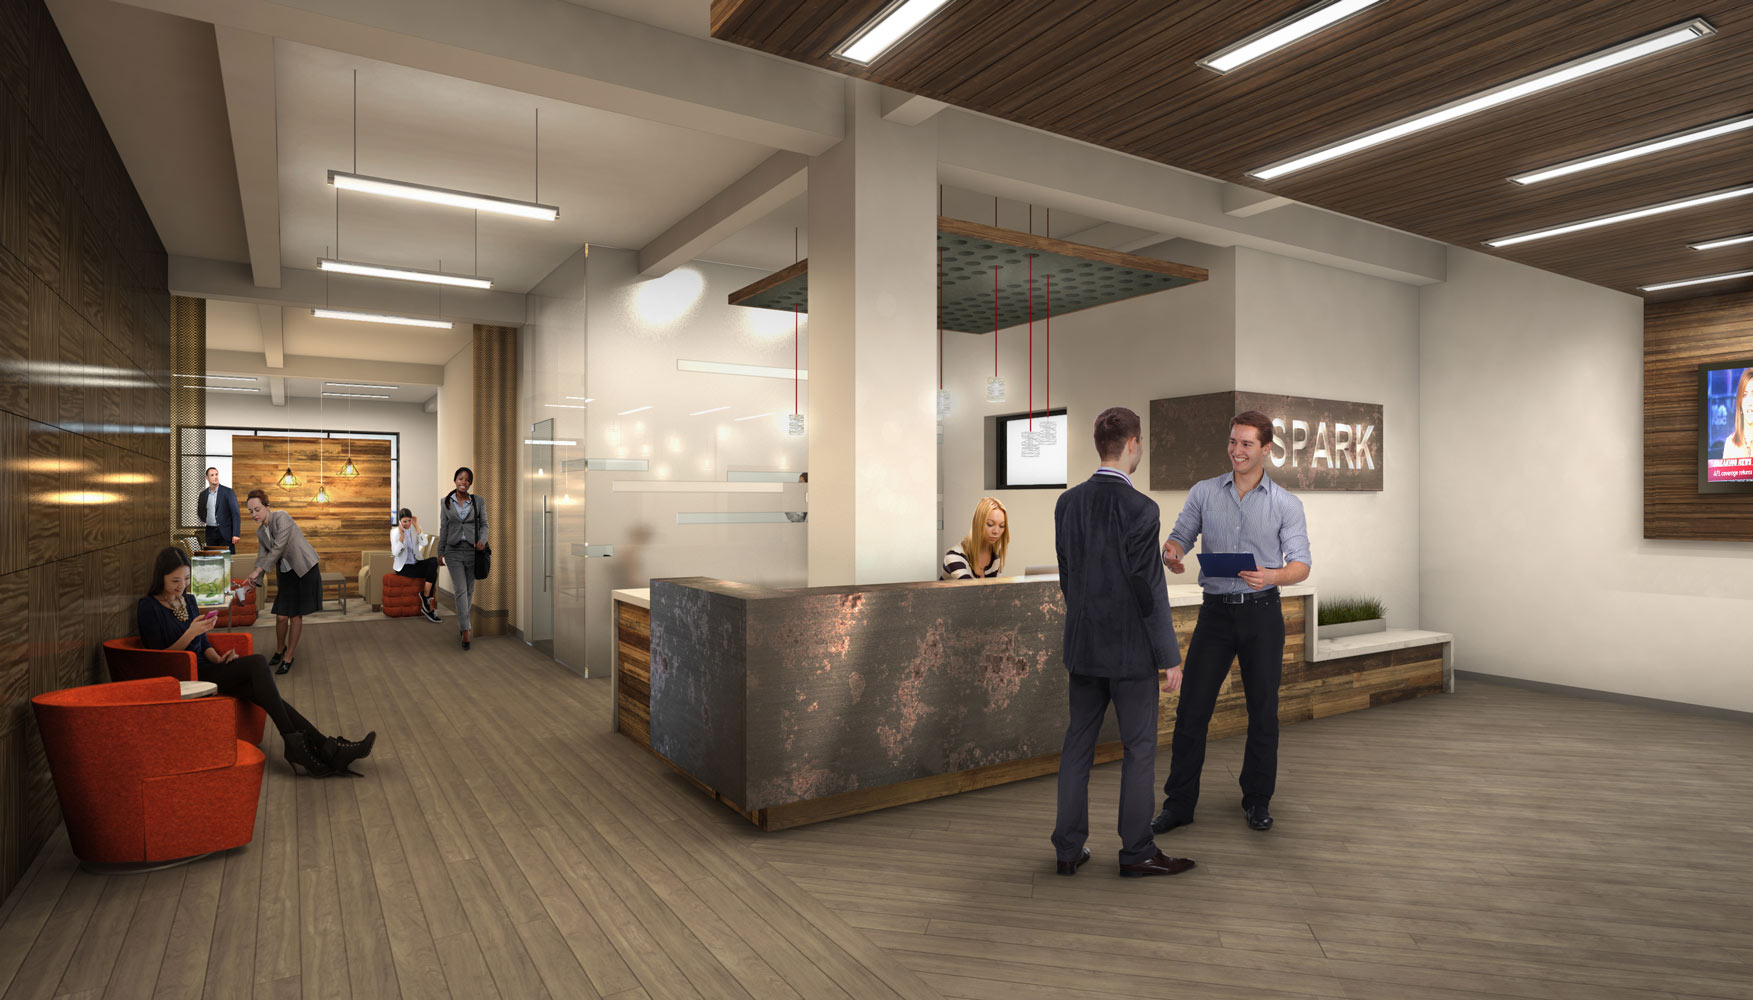 Spark Collaborative Office Space Architectural 3D Rendering